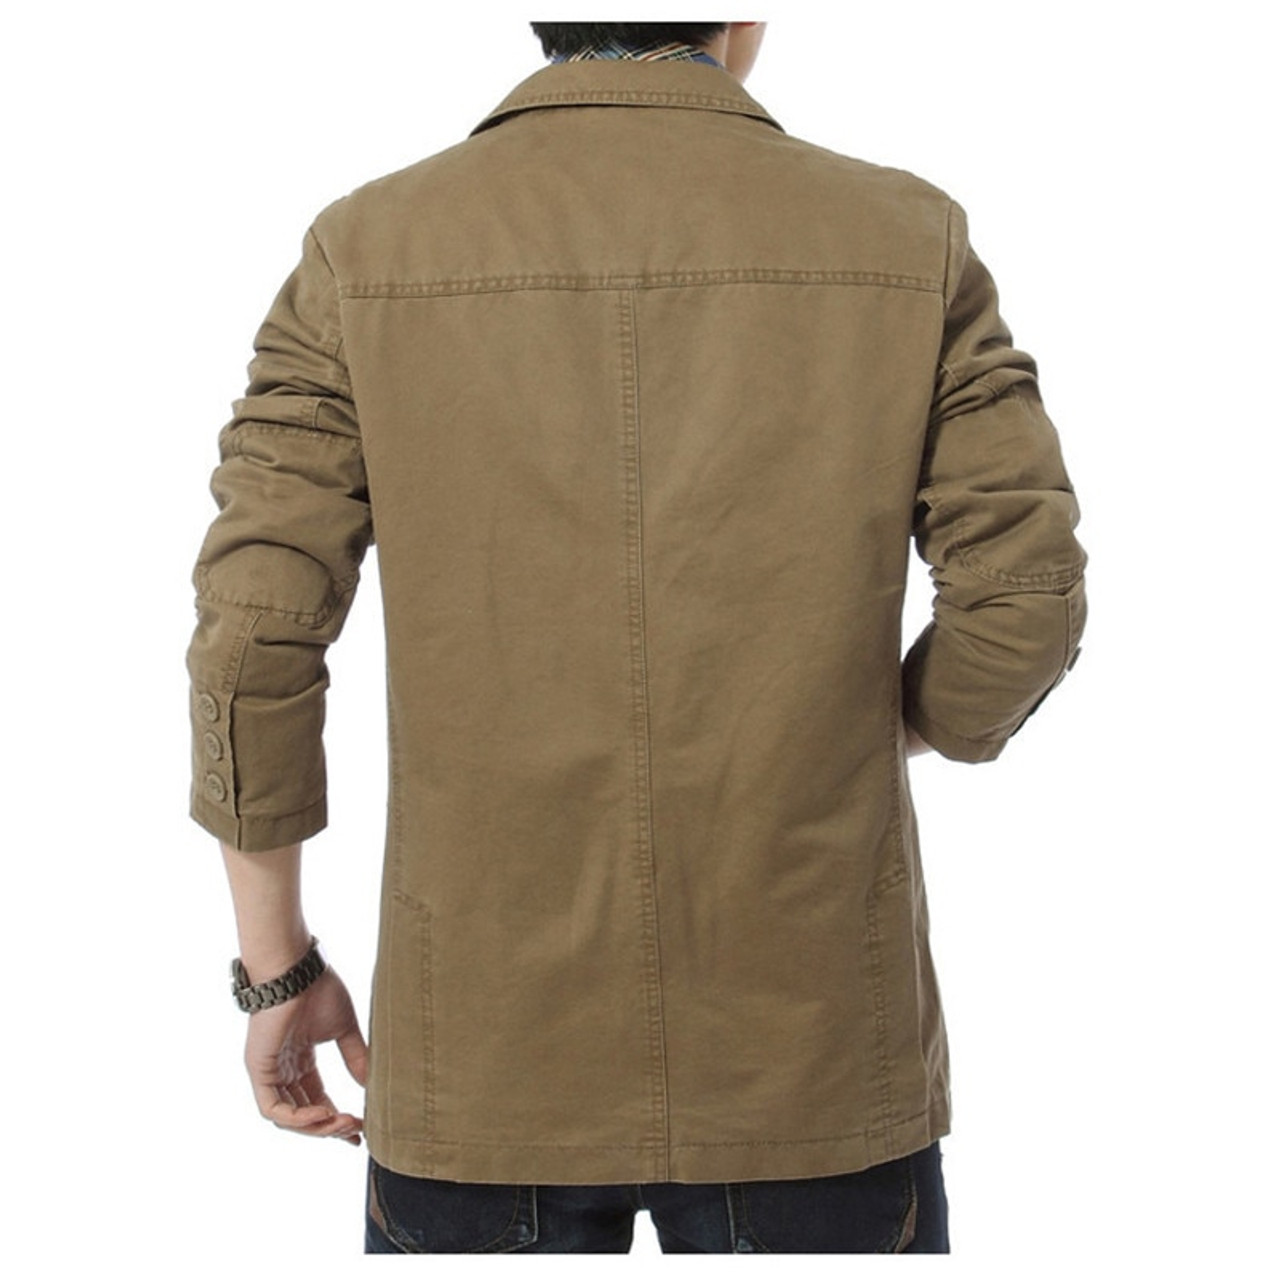 1f2df02e336a8 ... NIANJEEP 2017 New Autumn Casual Blazers Men Cotton Deinm Casual Suits  Jackets Military Army Green Khaki ...